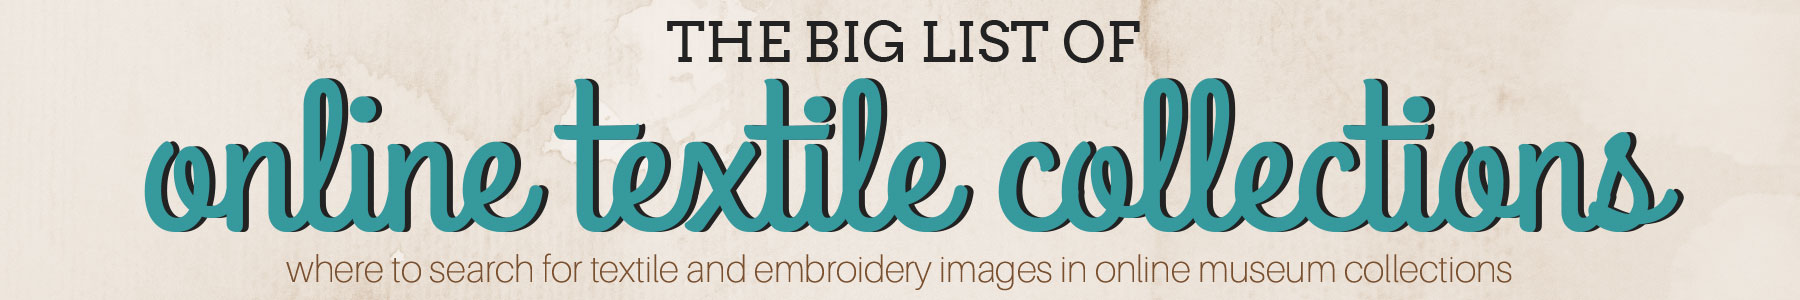 The big list of online textile collections